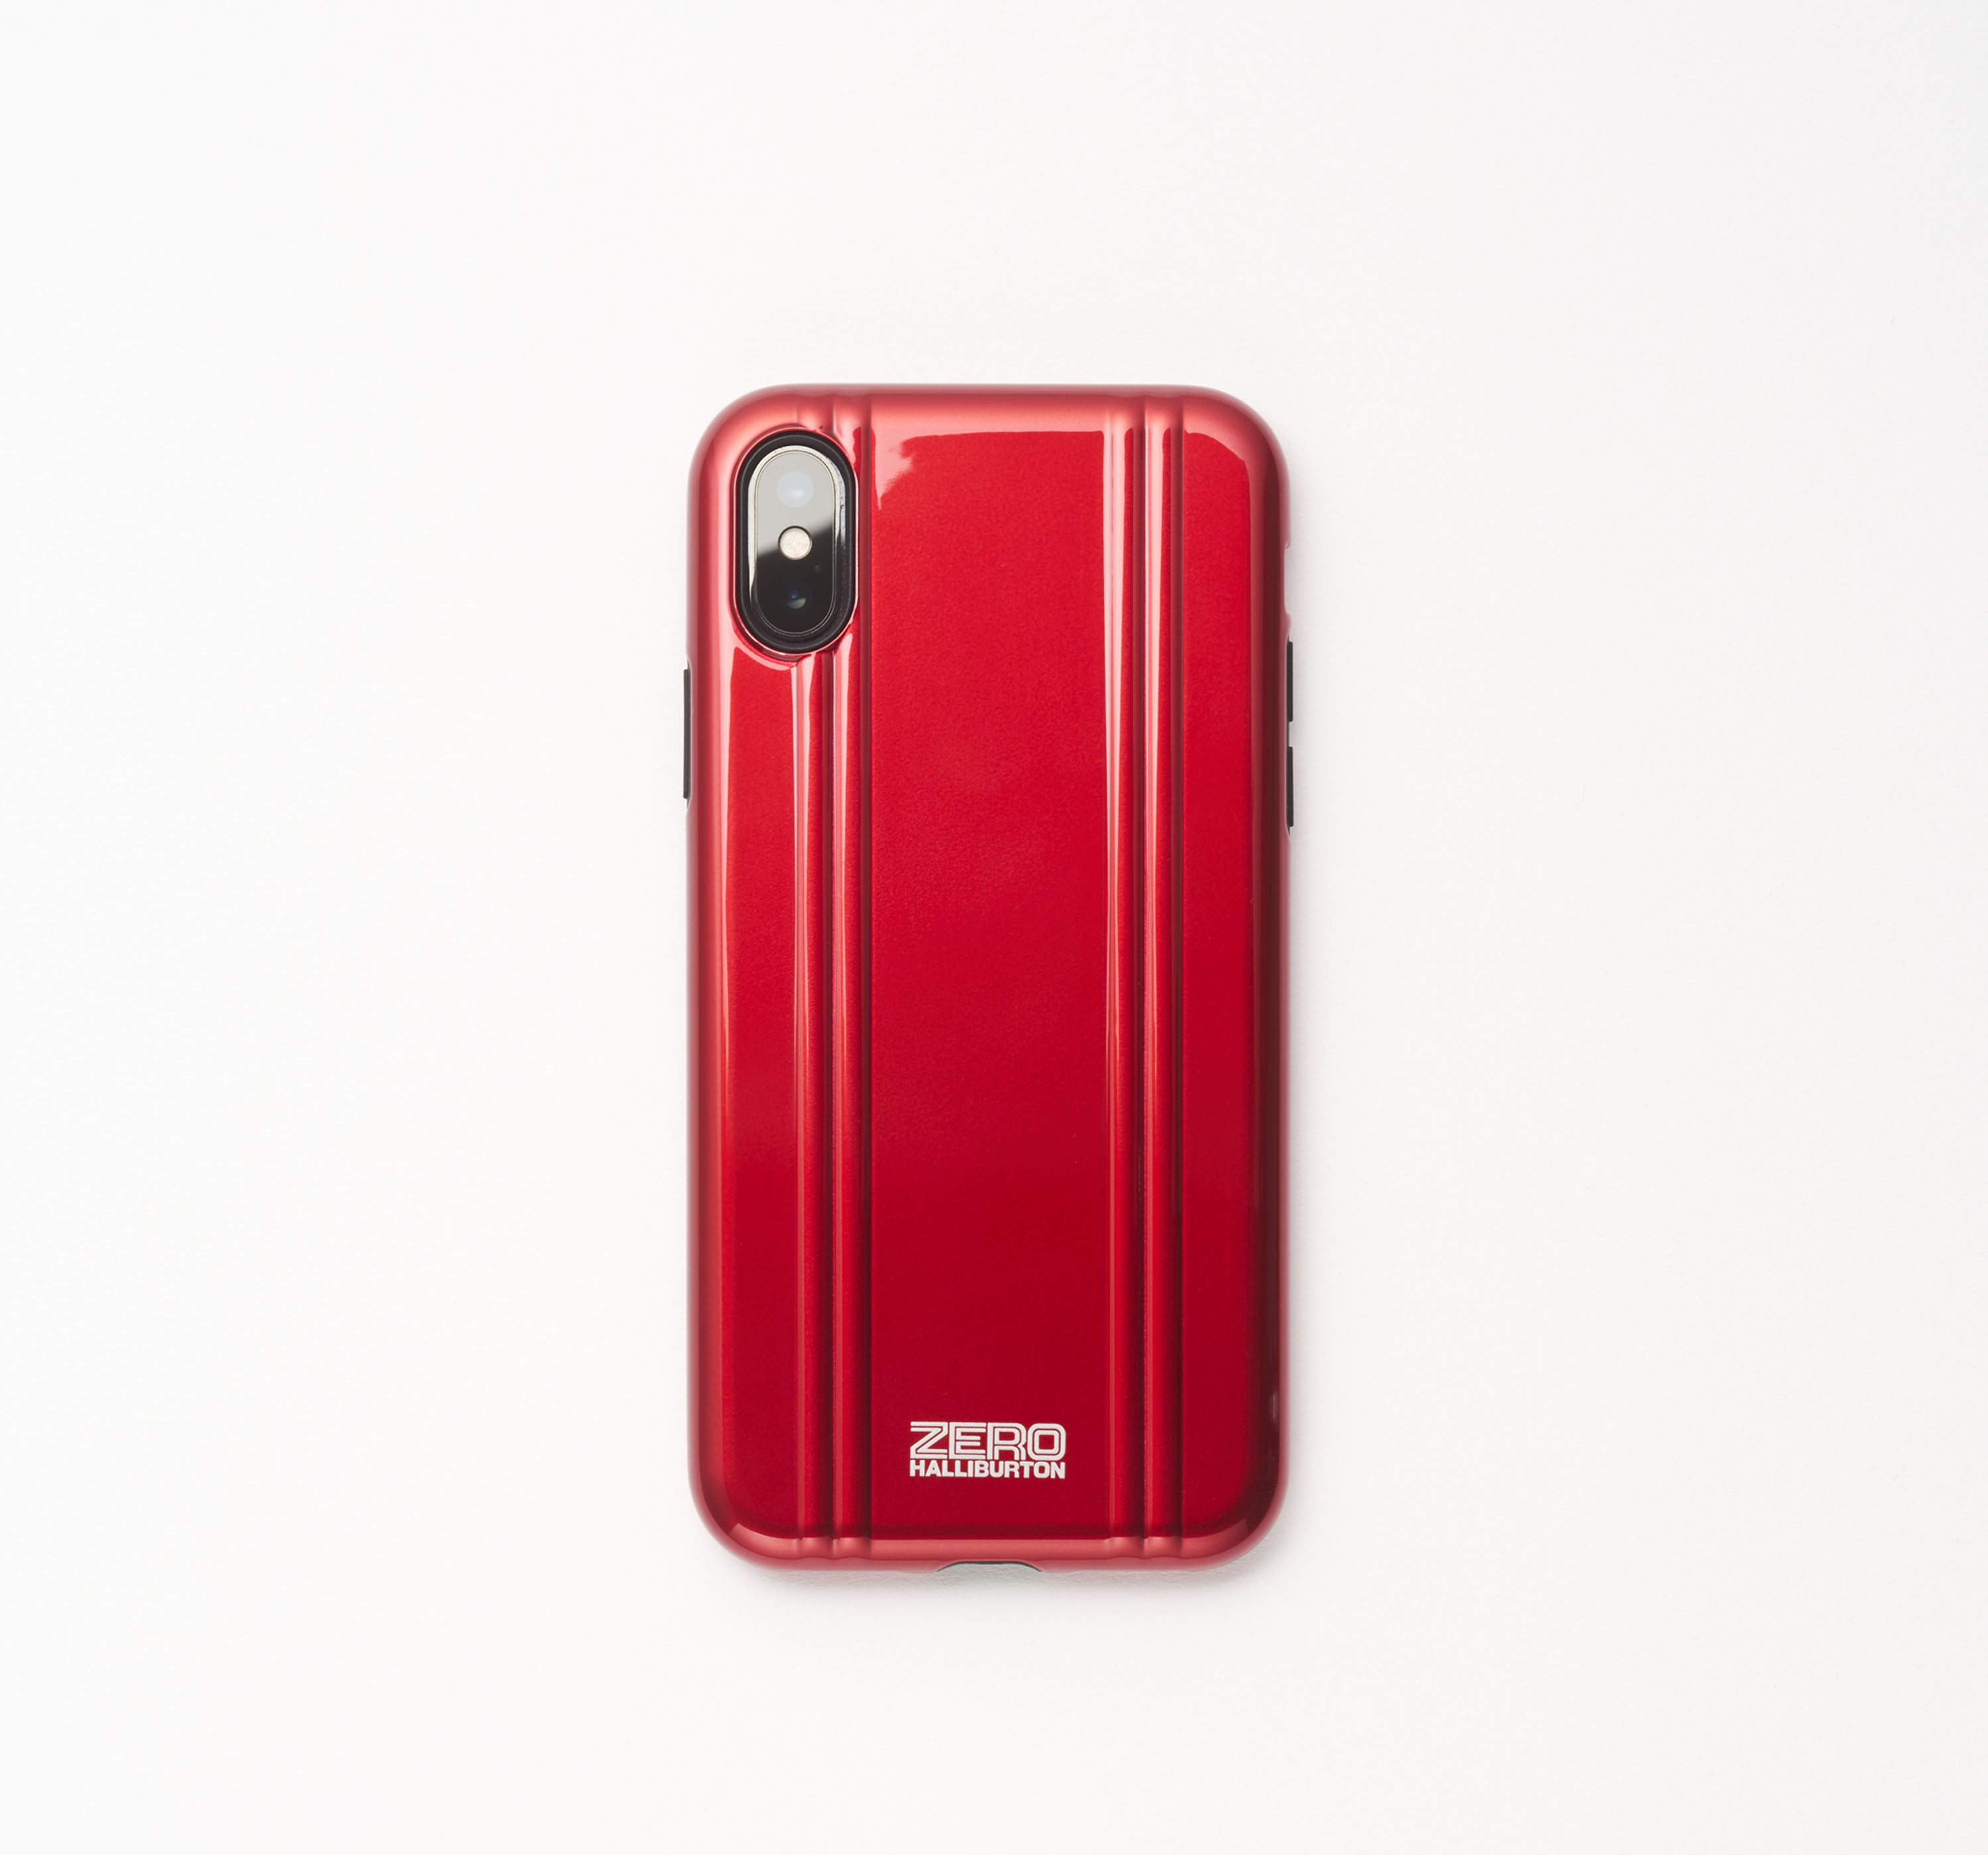 promo code 5d46c 2cfd4 Accessories | High Polish iPhone X Protective Case